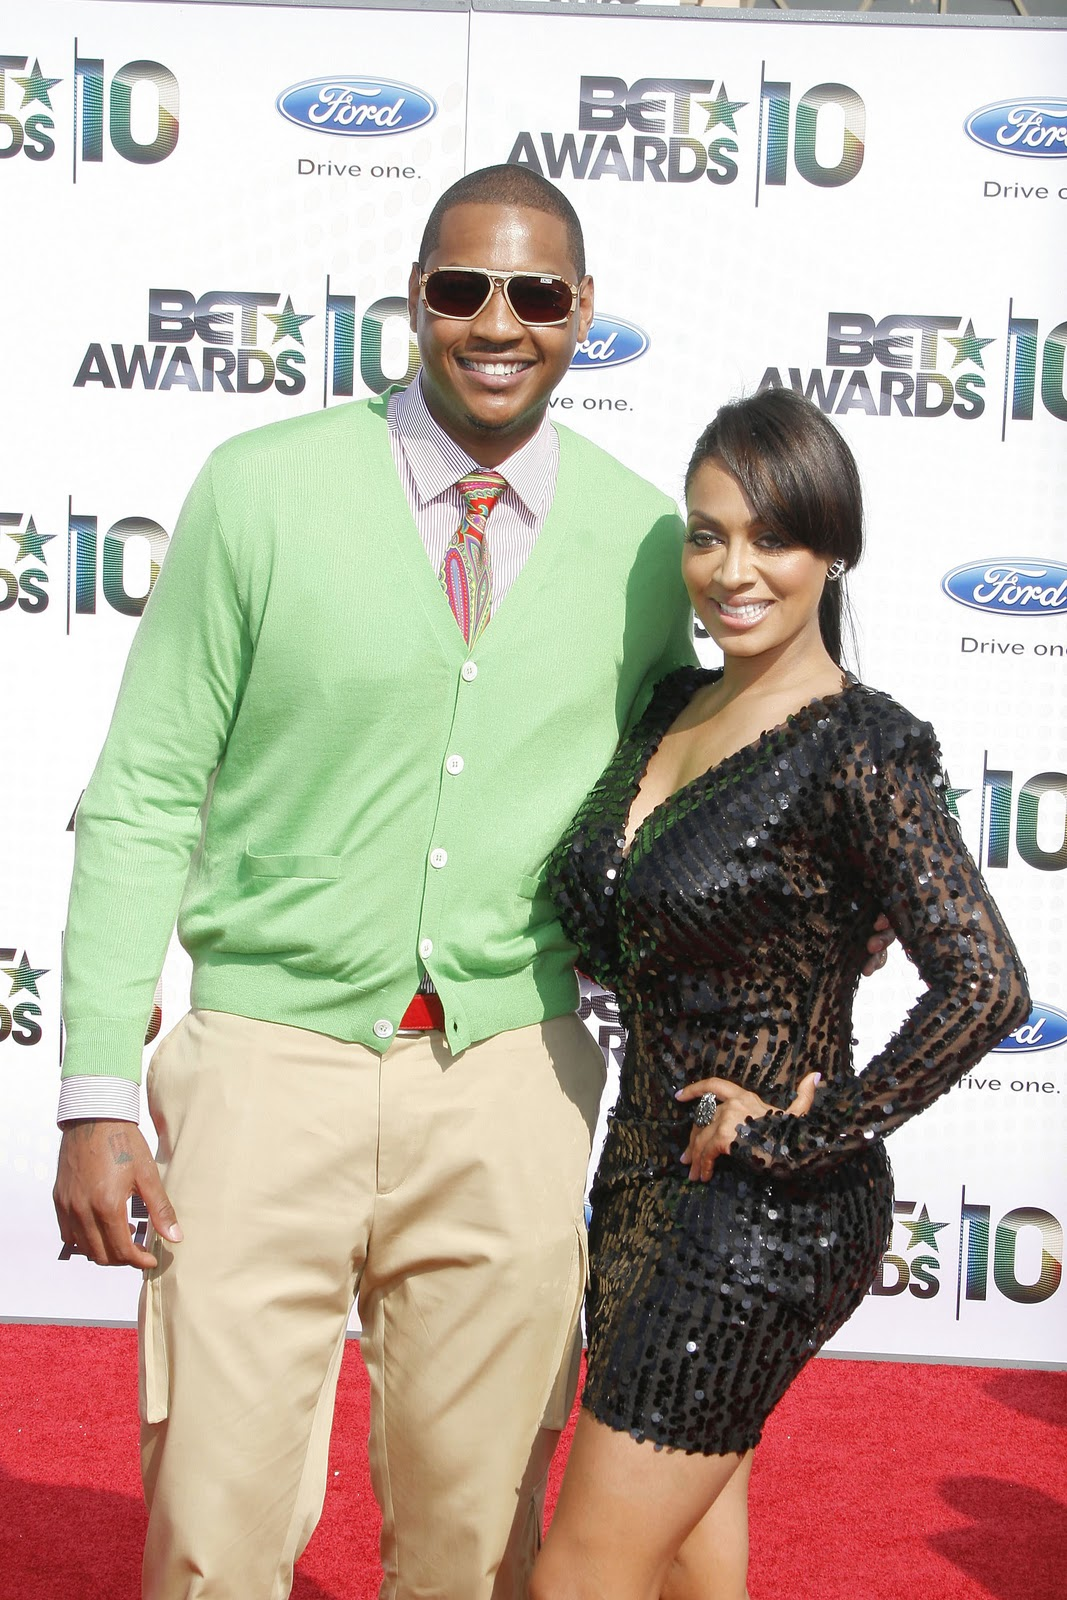 Carmelo Anthony | With Wife La La New Photos 2012 | All ...